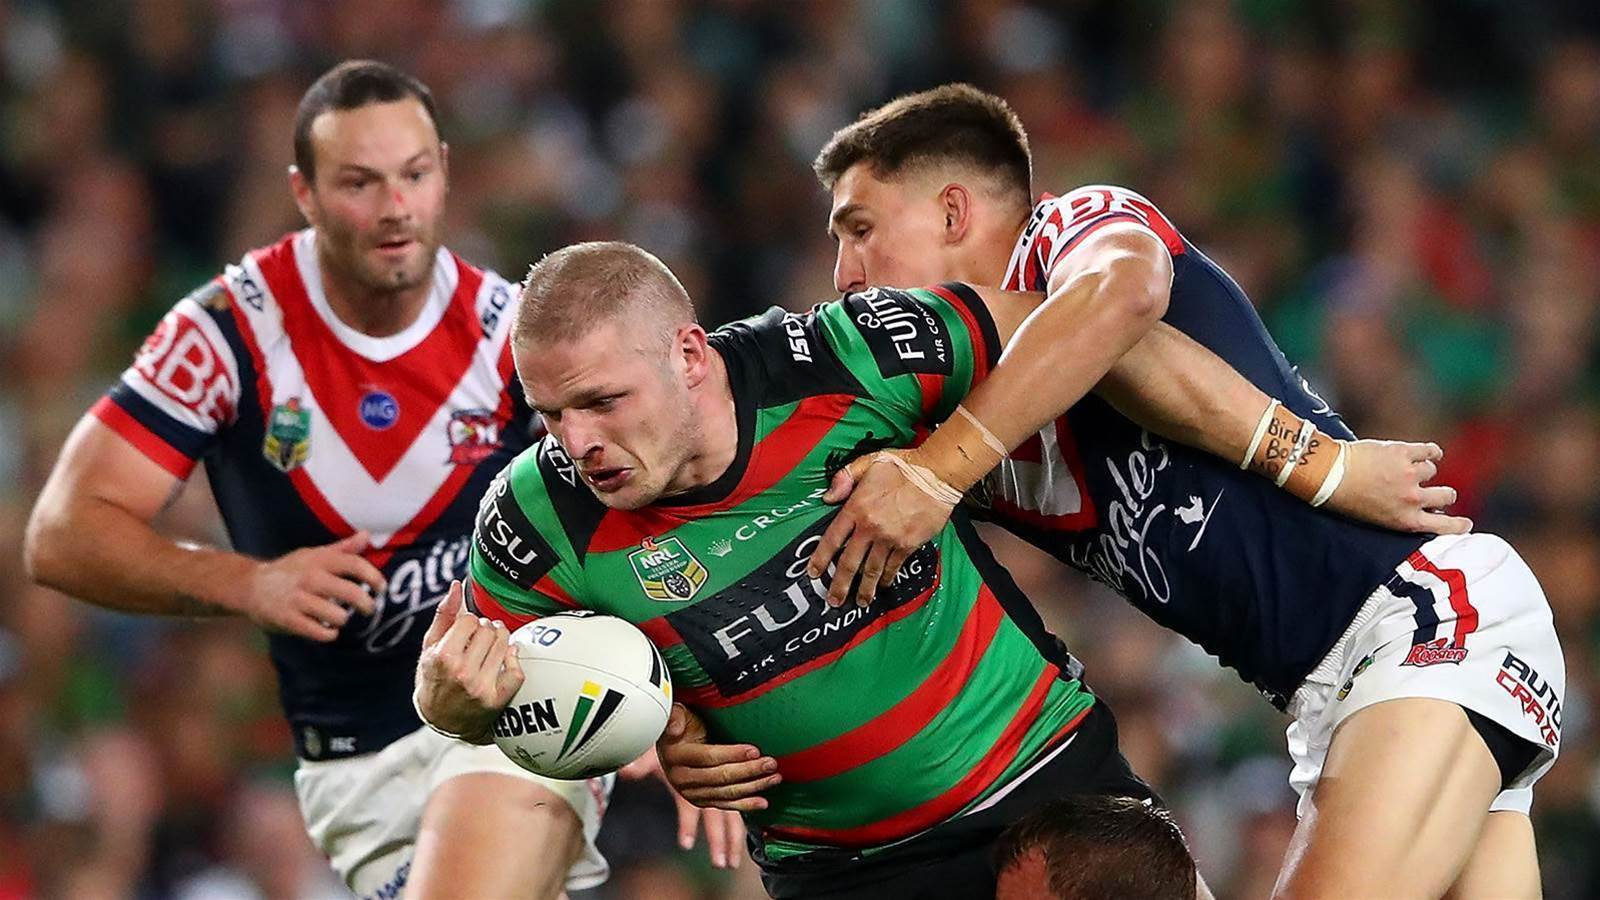 Burgess cited for eye gouge